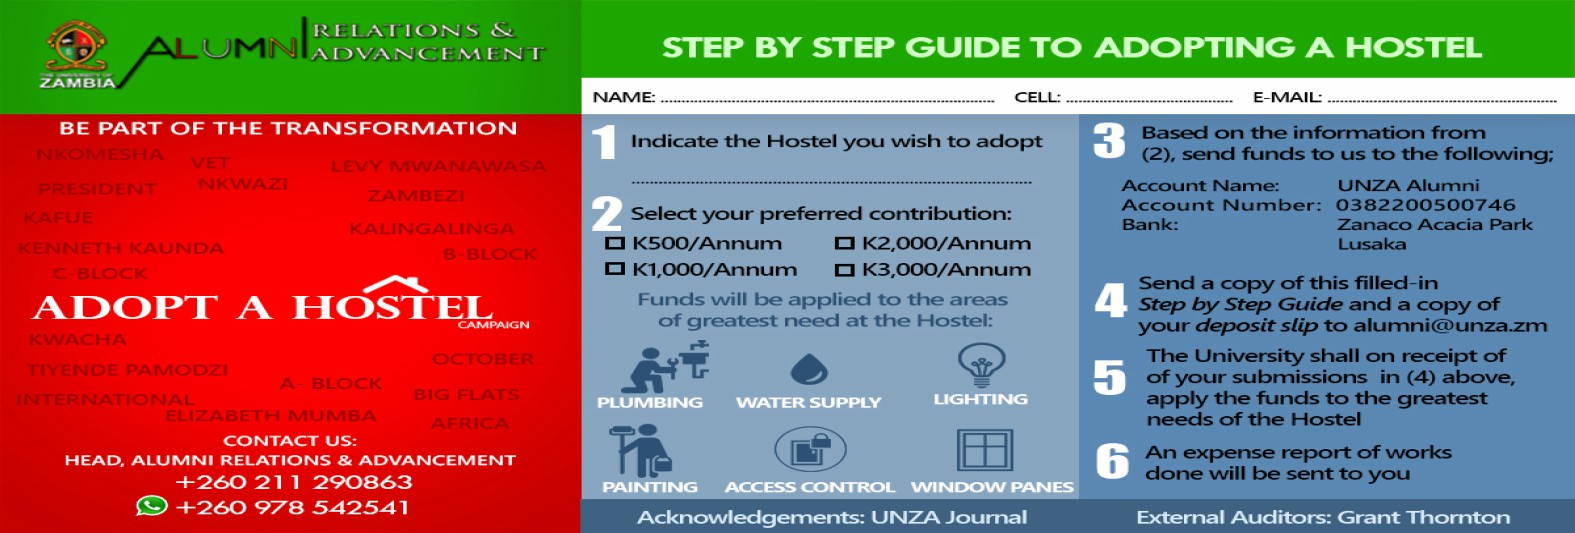 Step by Step Guide to Adopting a Hostel at UNZA